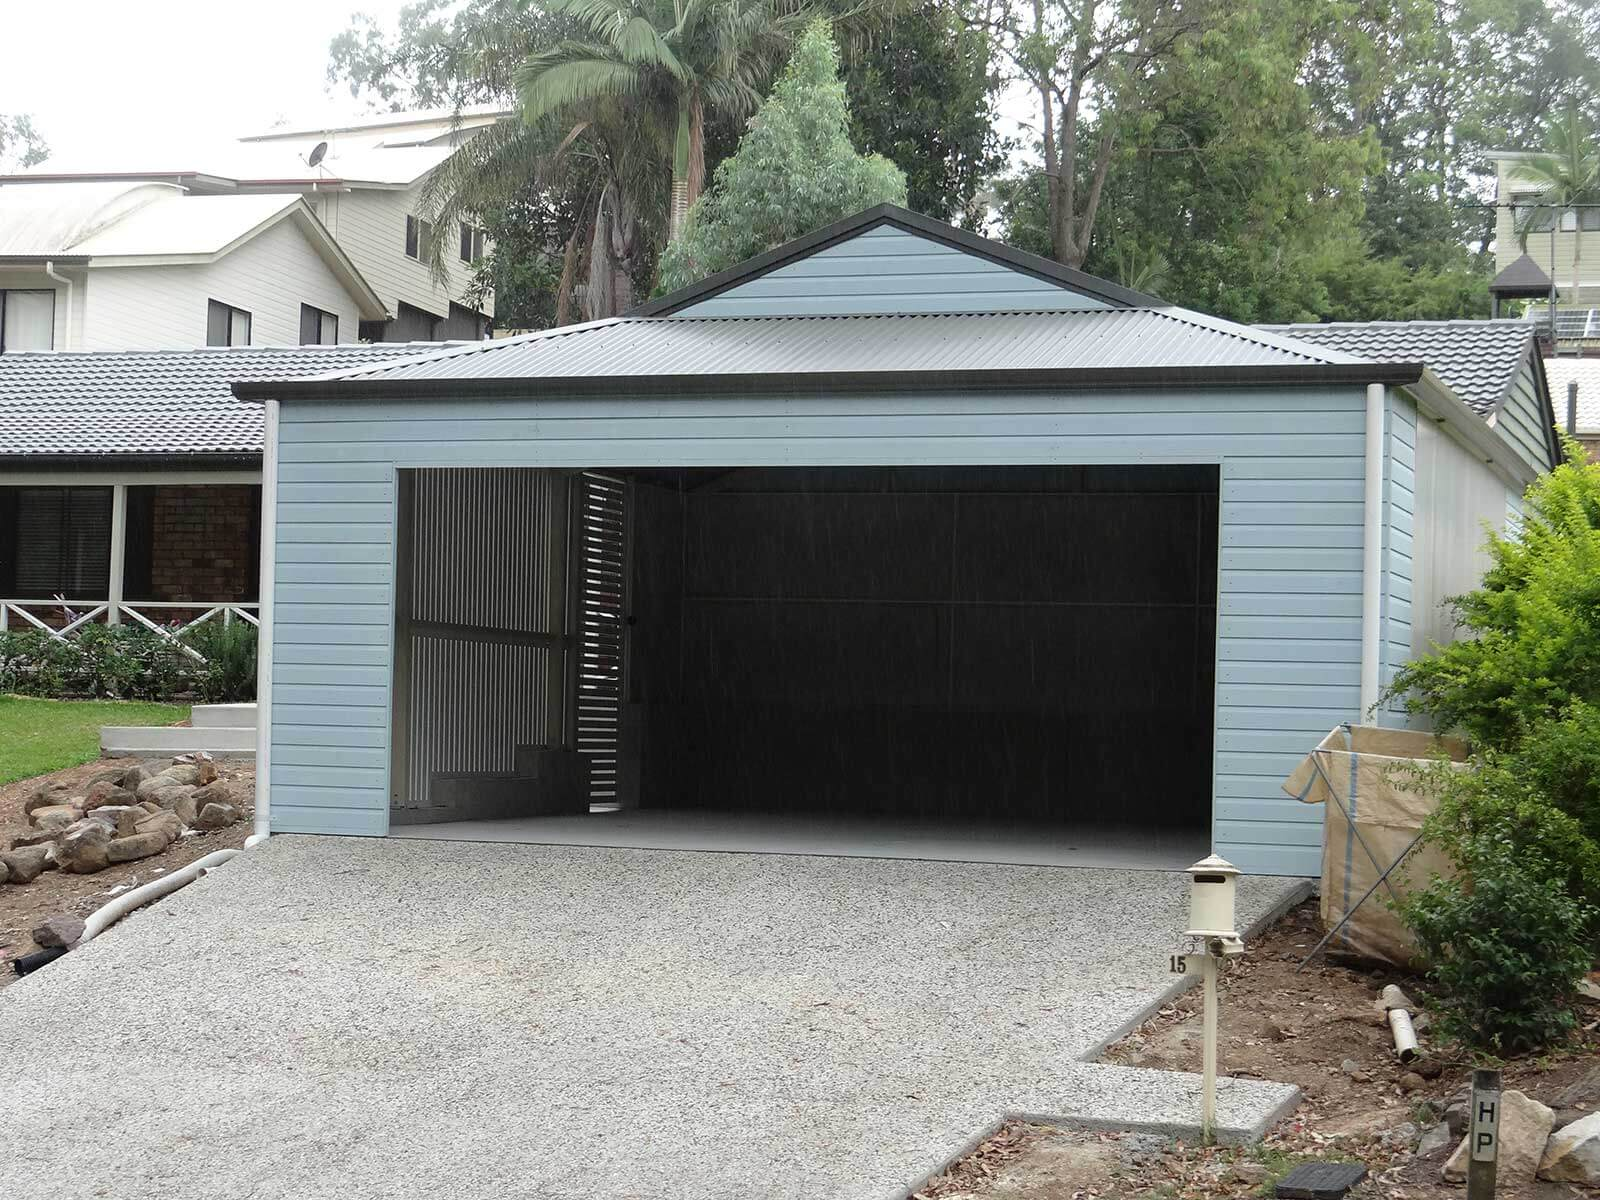 Dutch Gable Blue Design Carport